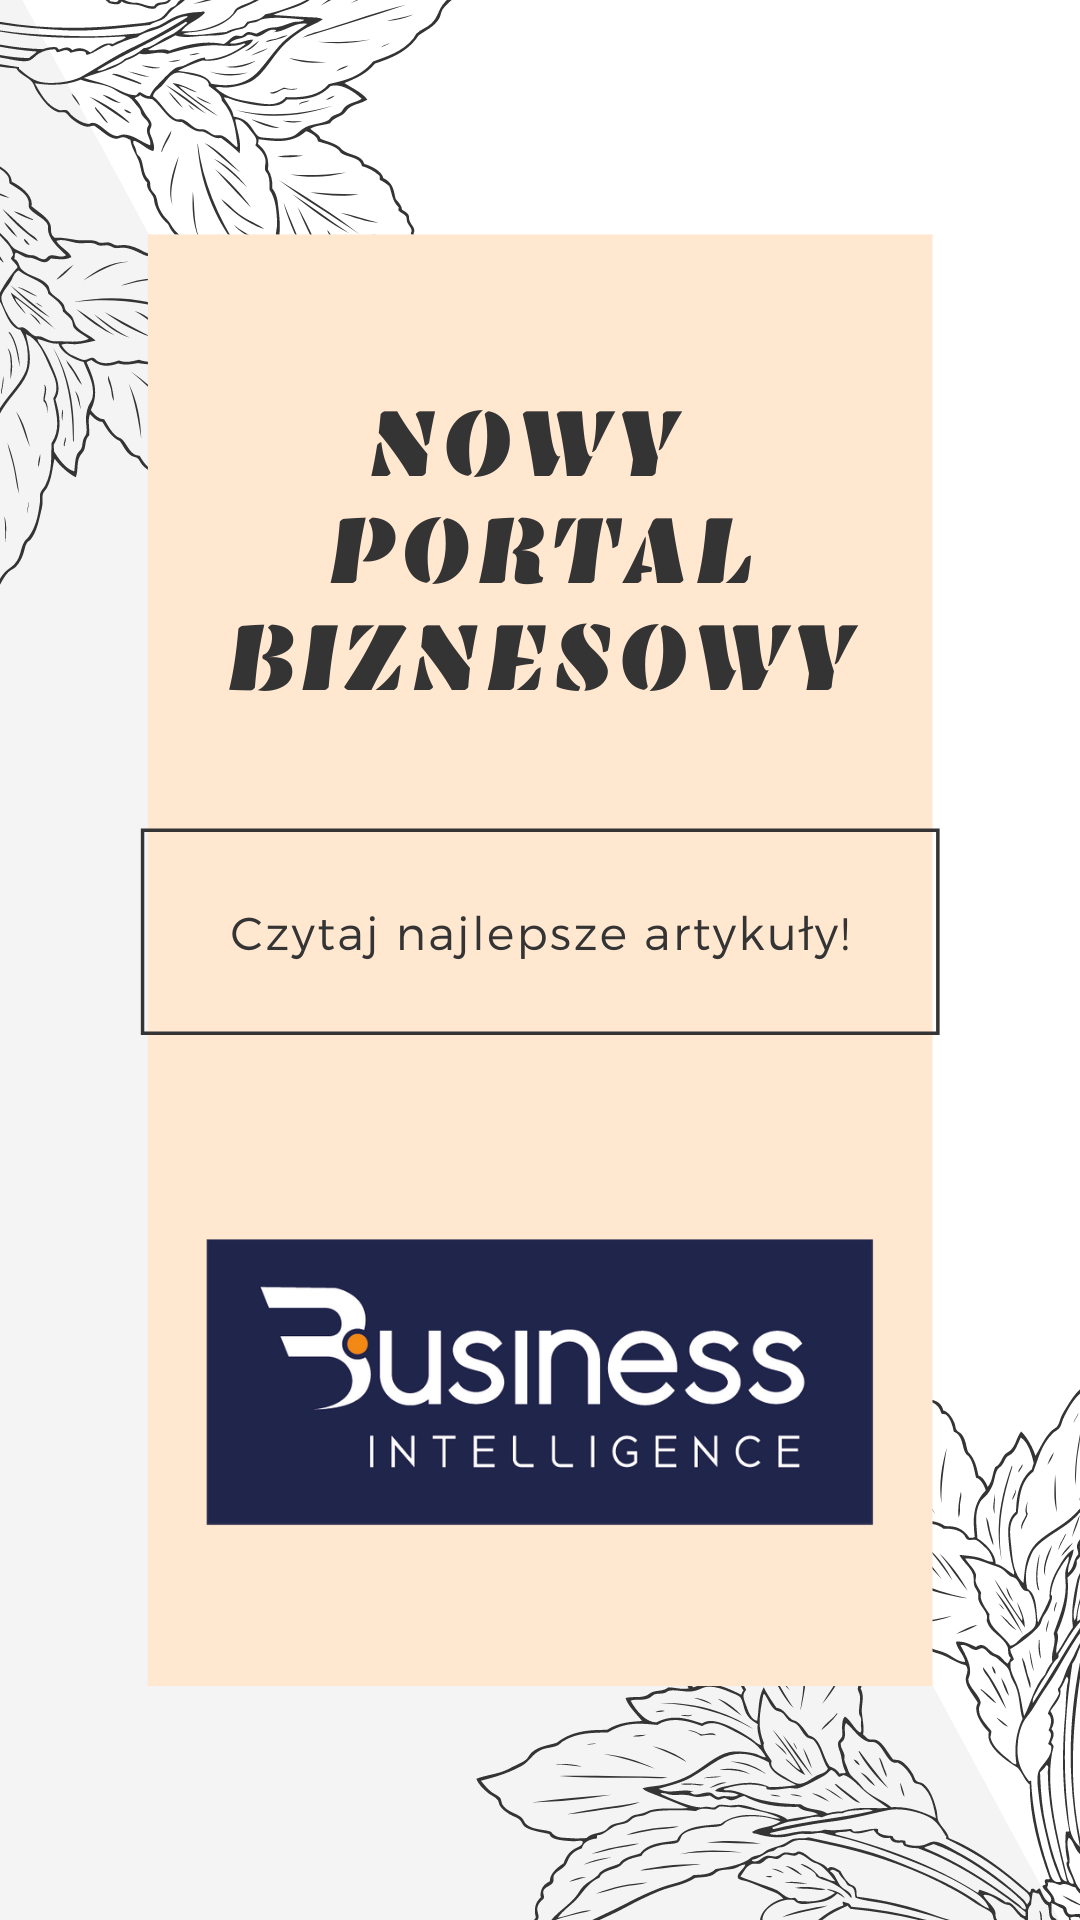 portal business intelligence